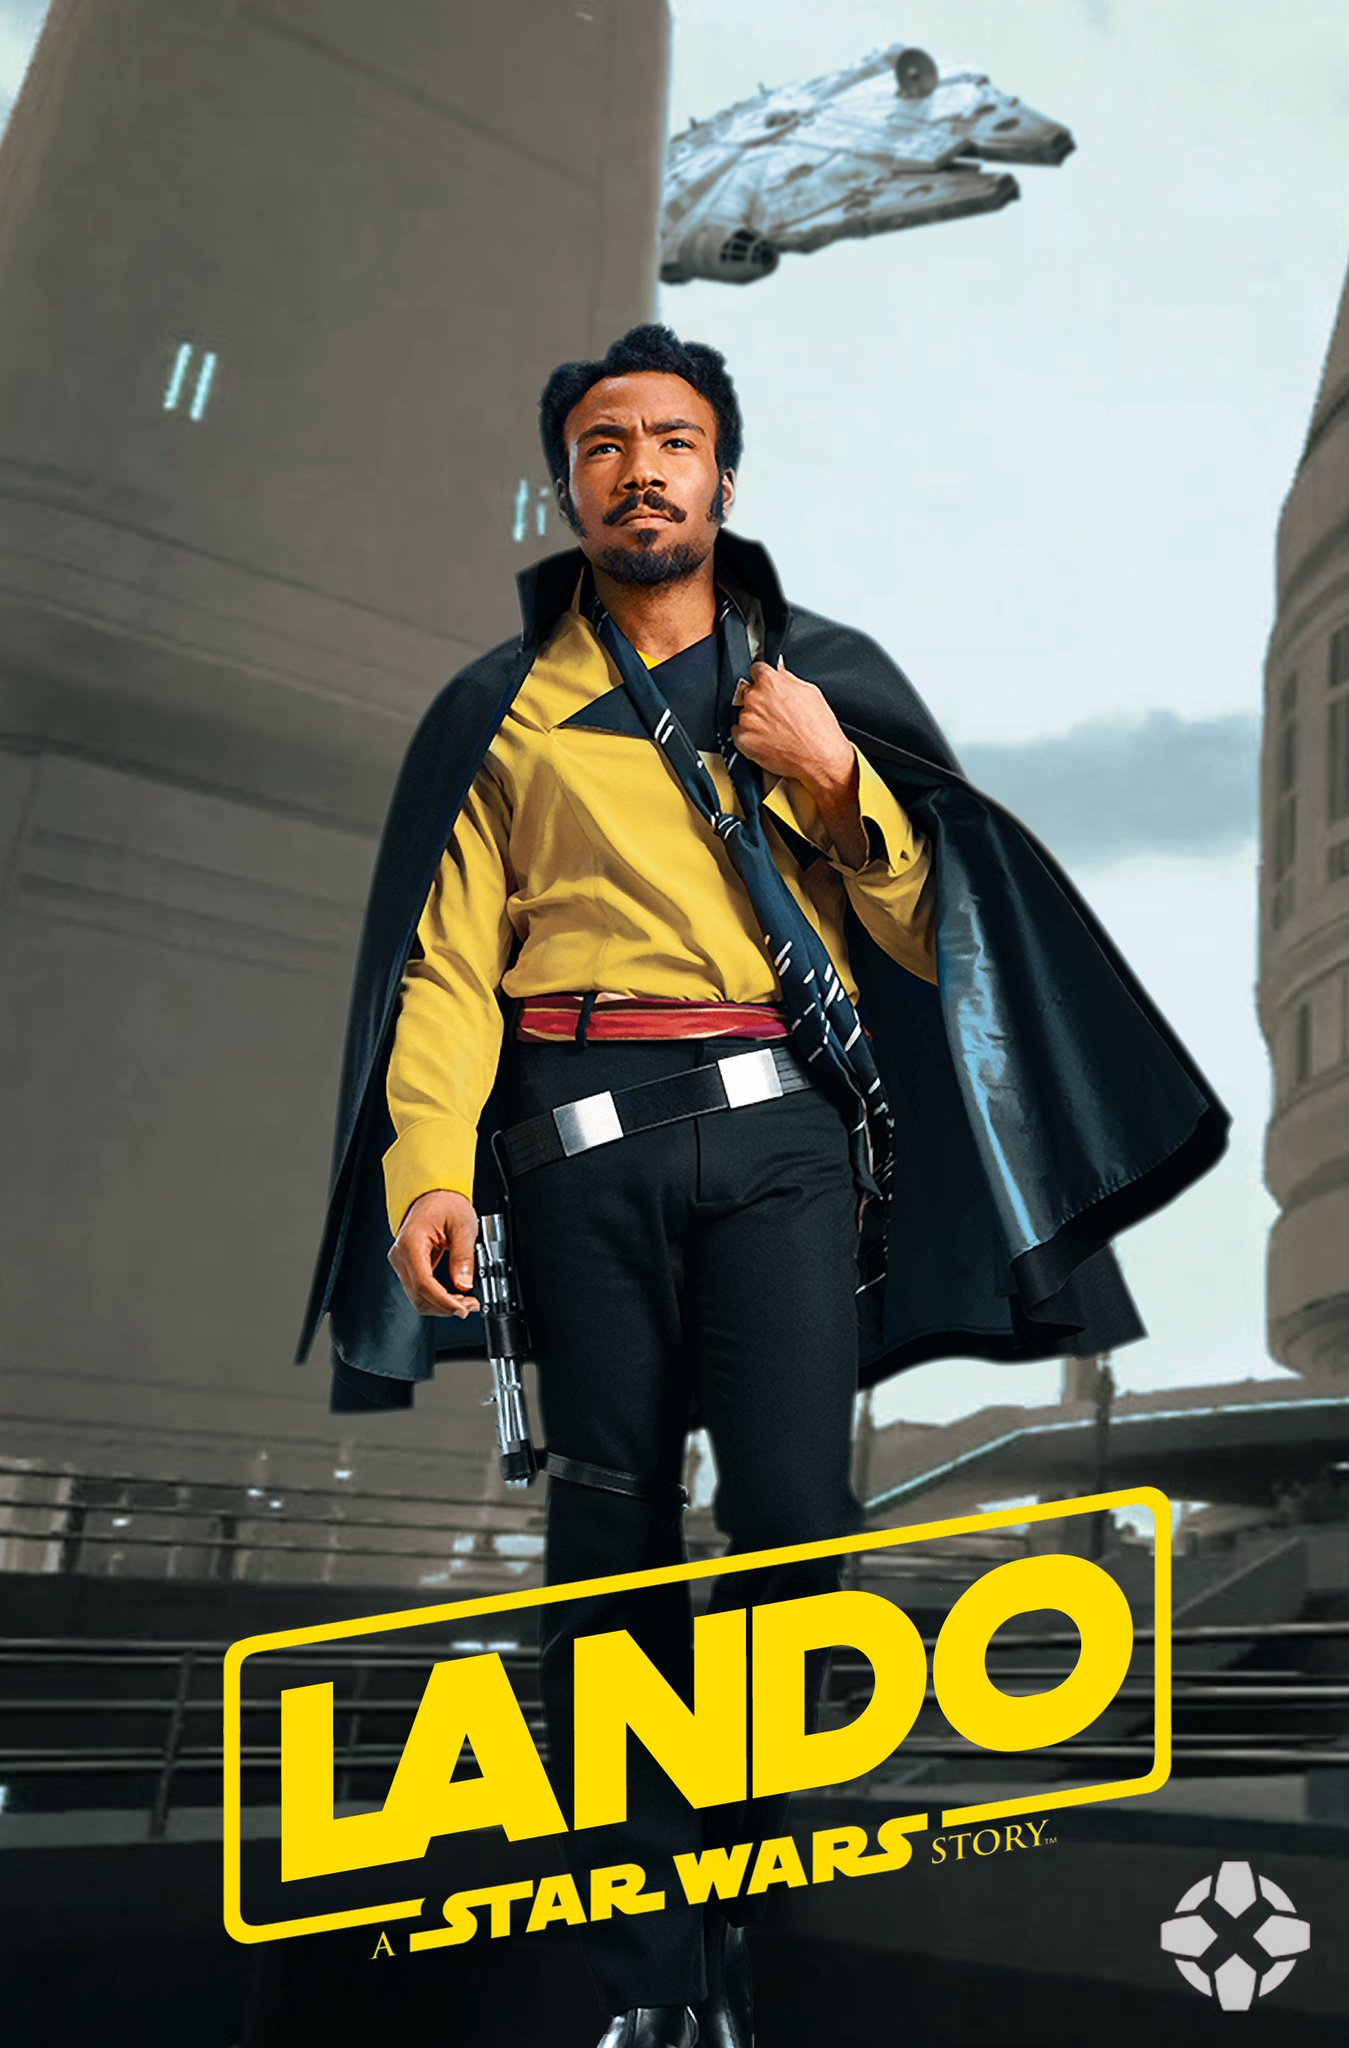 RT if you want a Lando spinoff Star Wars movie?! https://t.co/A8XVSt9Faj